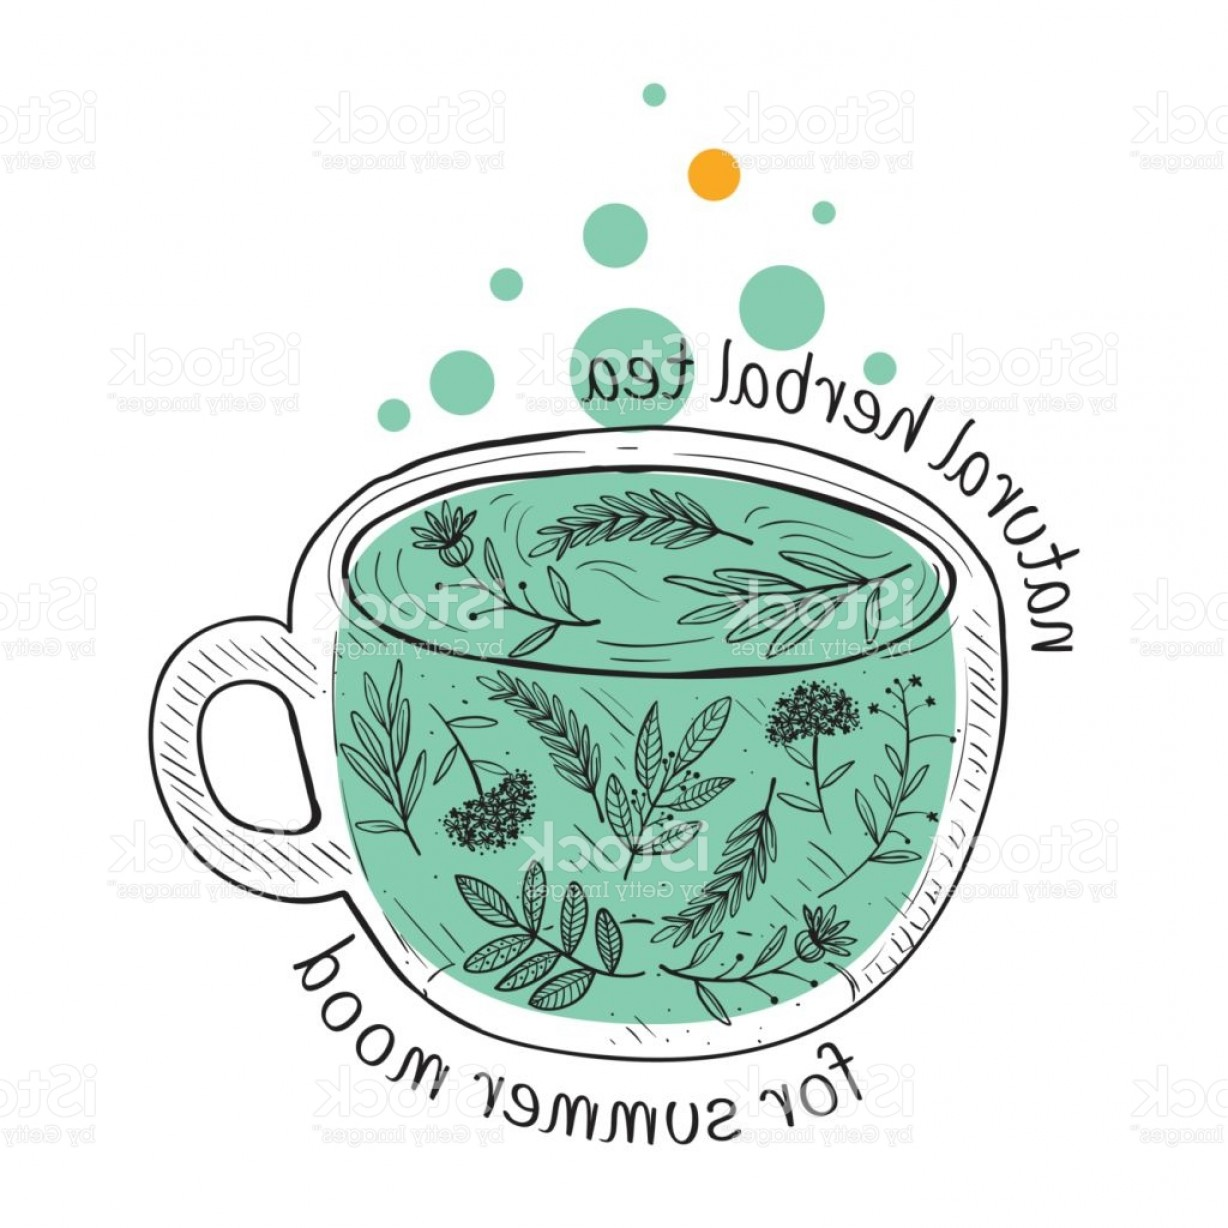 Vintage Tea Cup Vector: Vector Card Design With Hand Drawn Tea Illustration Decorative Inking Background Gm